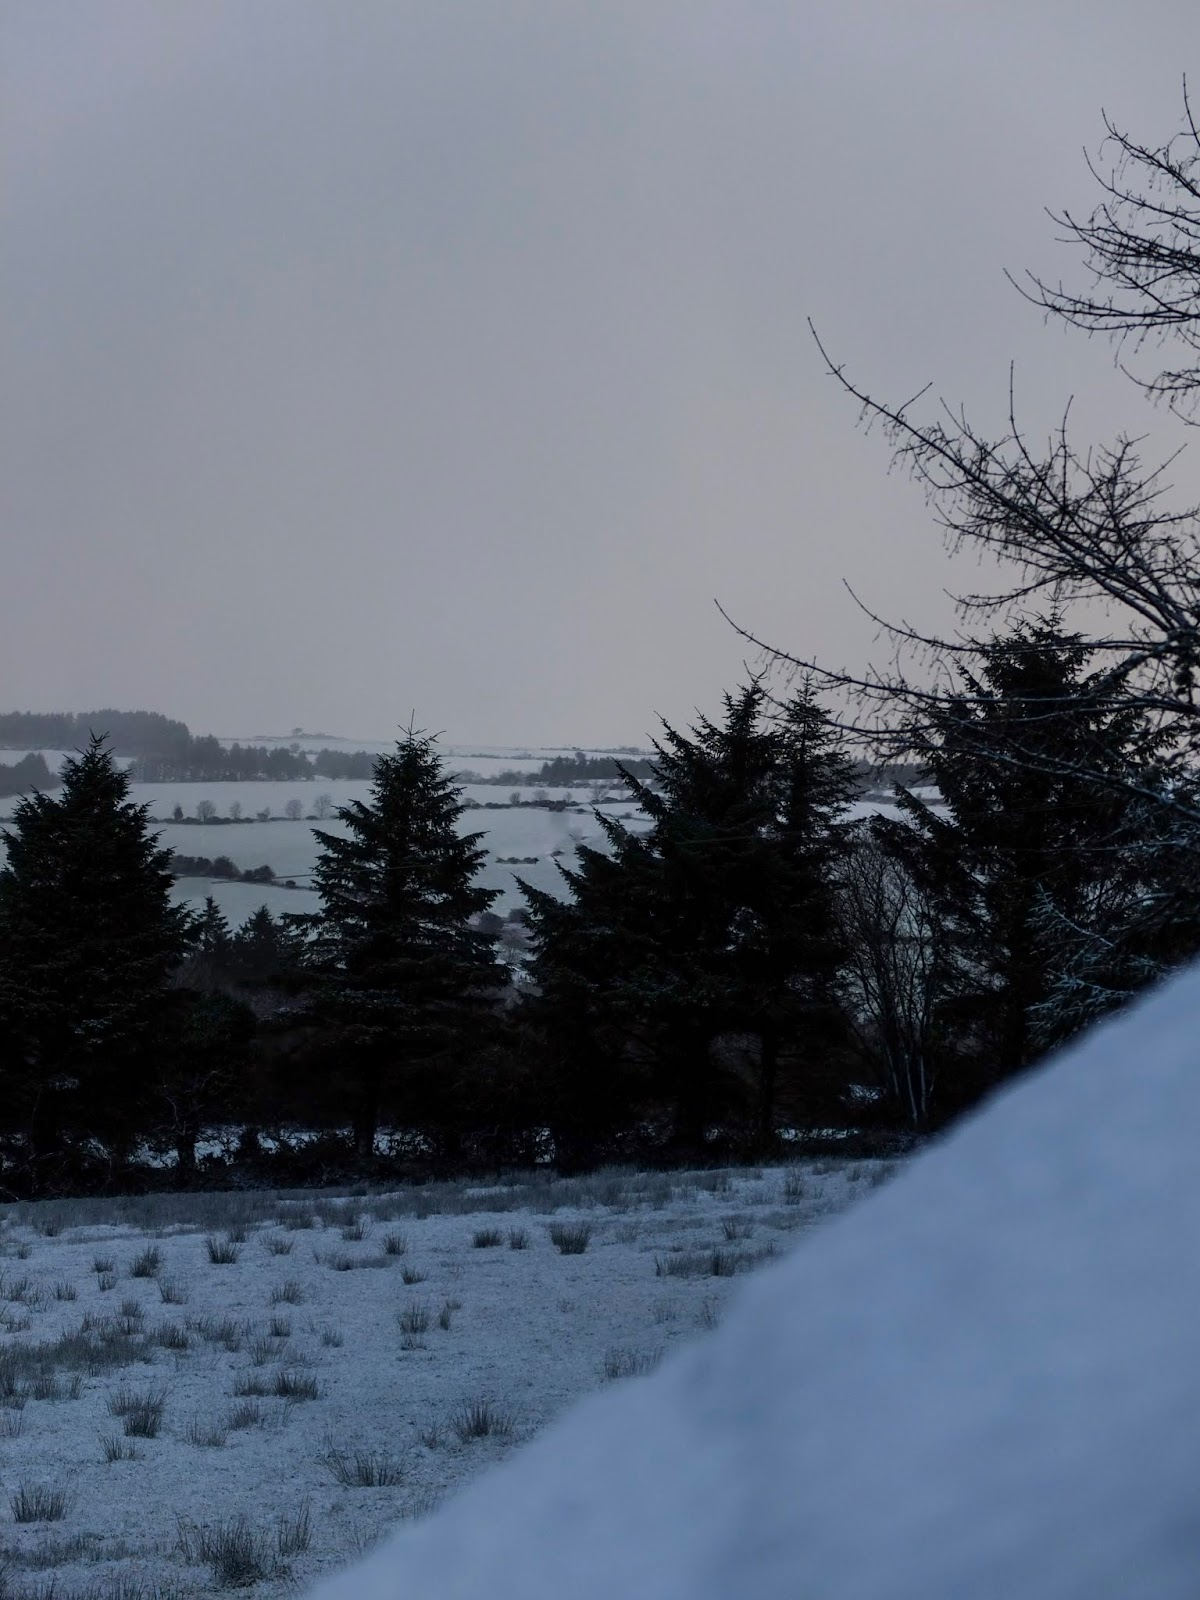 Grey tones of a landscape dusted with snow in North Cork.